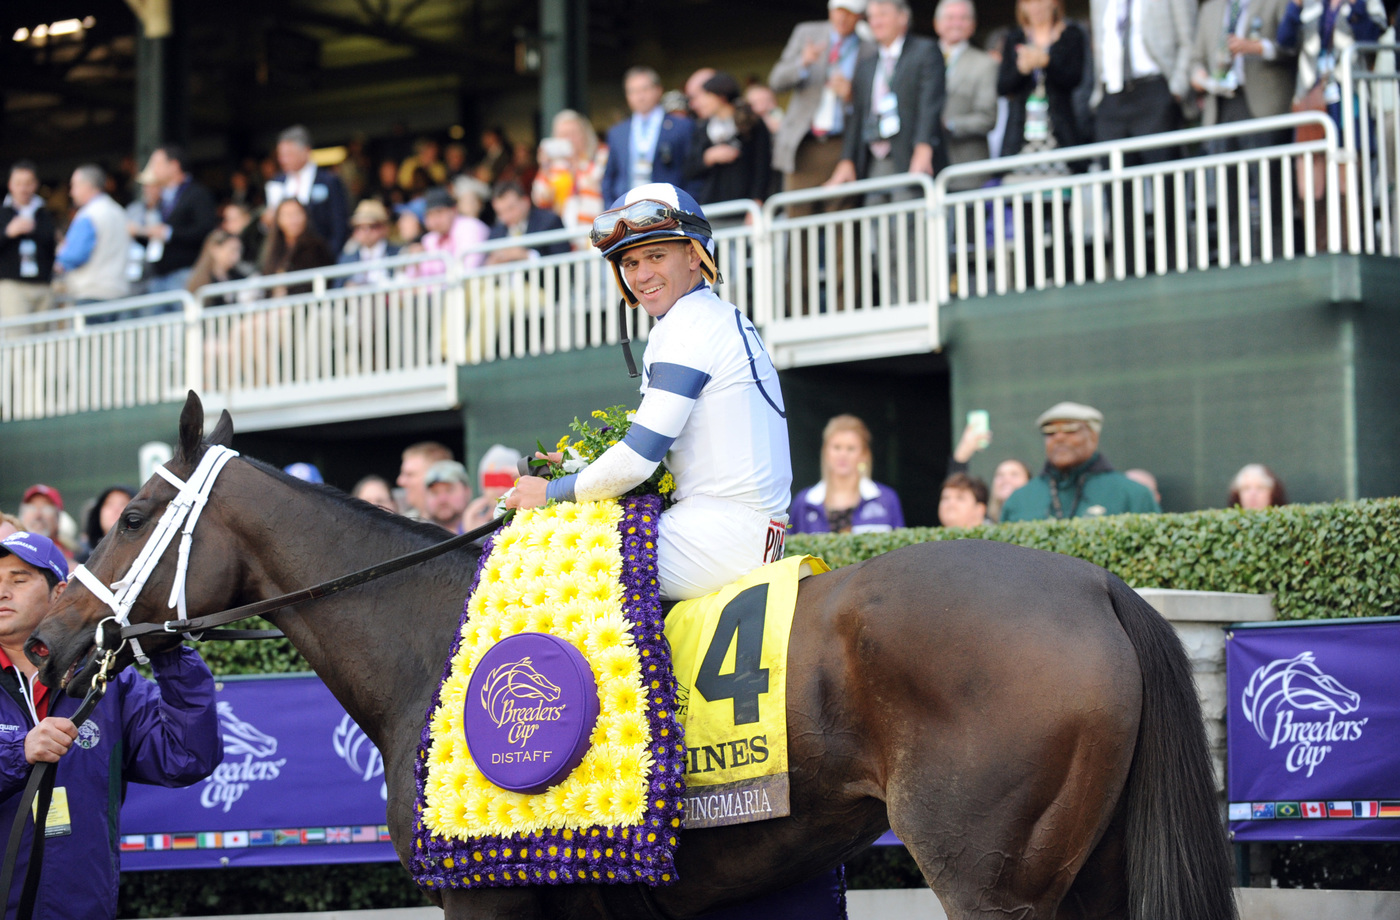 Longines Flat Racing Event: Longines times American Pharoah's historic victory in Breeders' Cup Classic 6